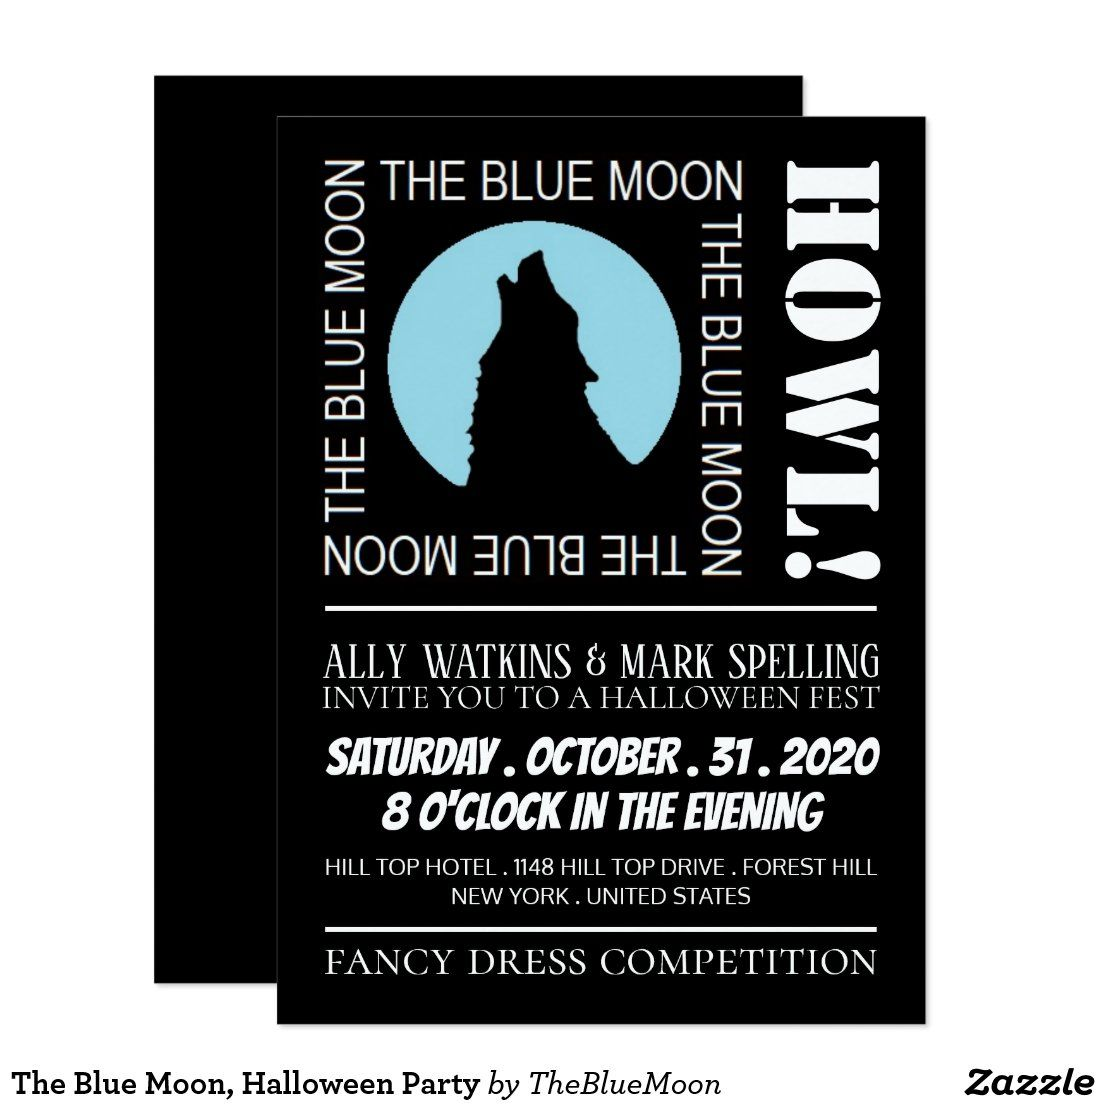 The Blue Moon, Halloween Party Invitation in